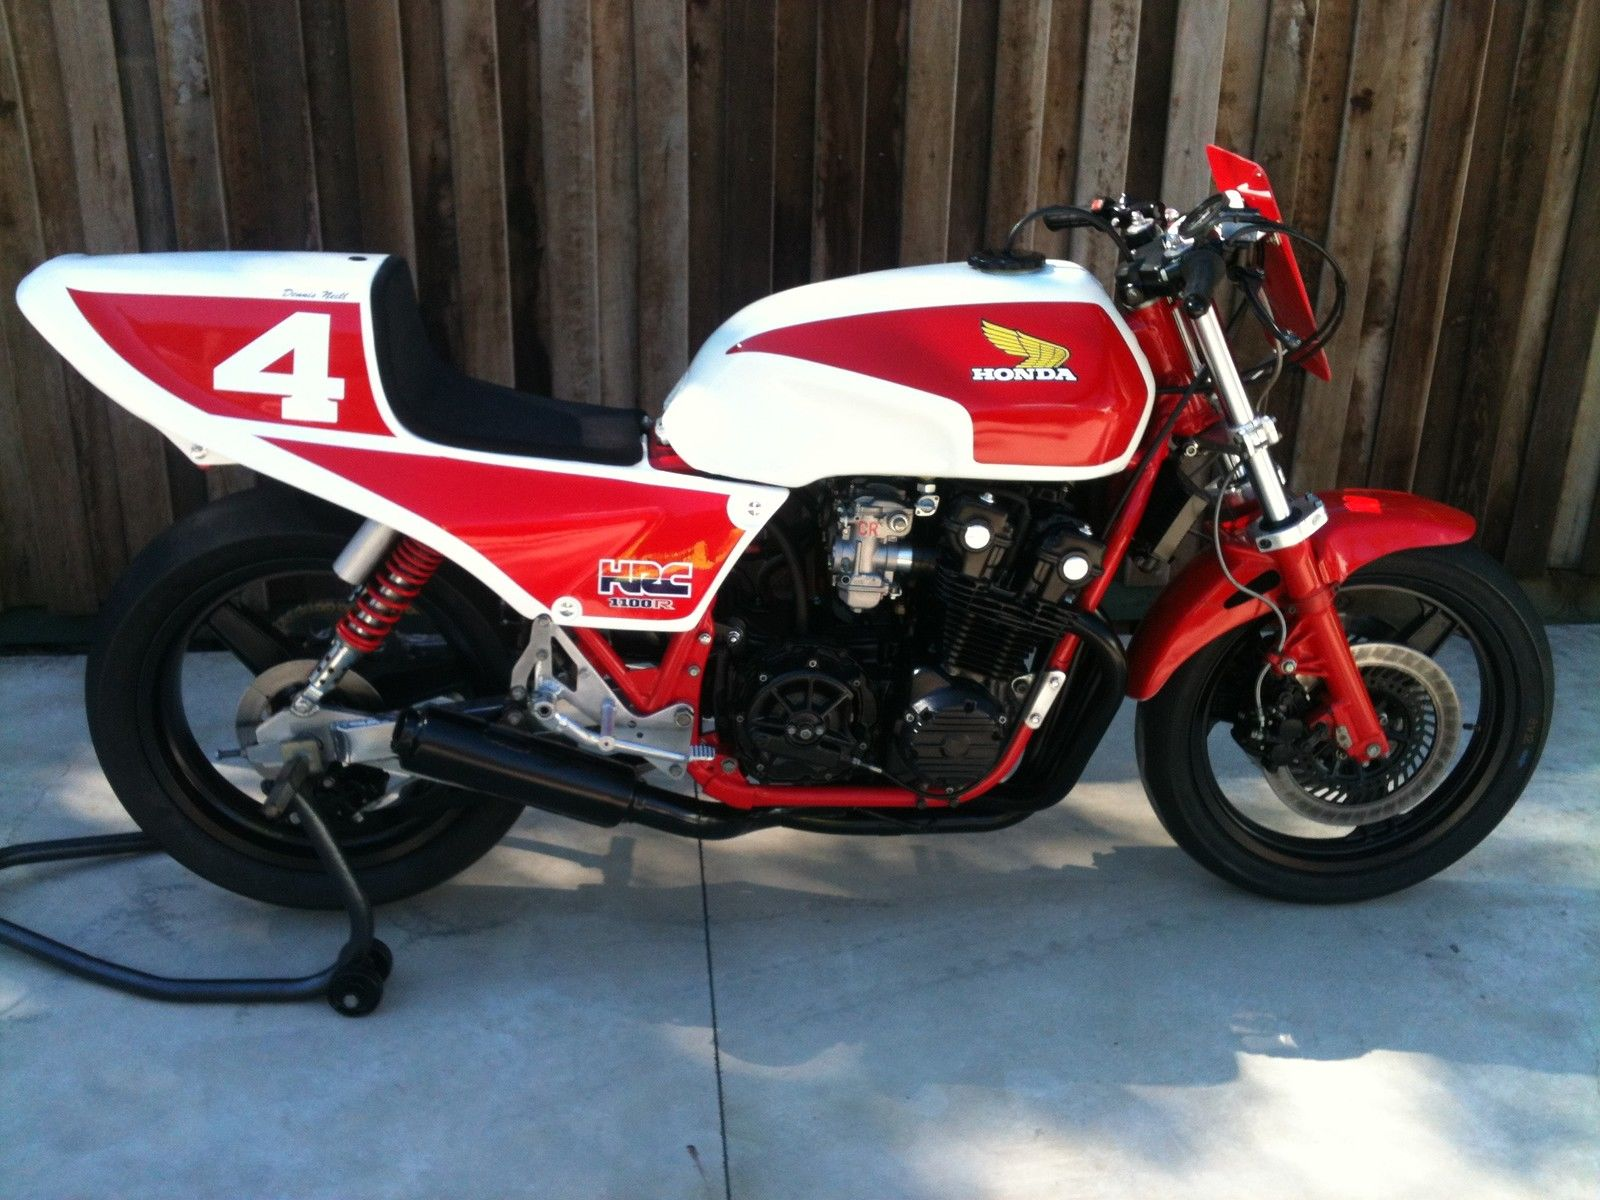 Name cb1100ra hrc race bike jpg views 4050 size 262 9 kb